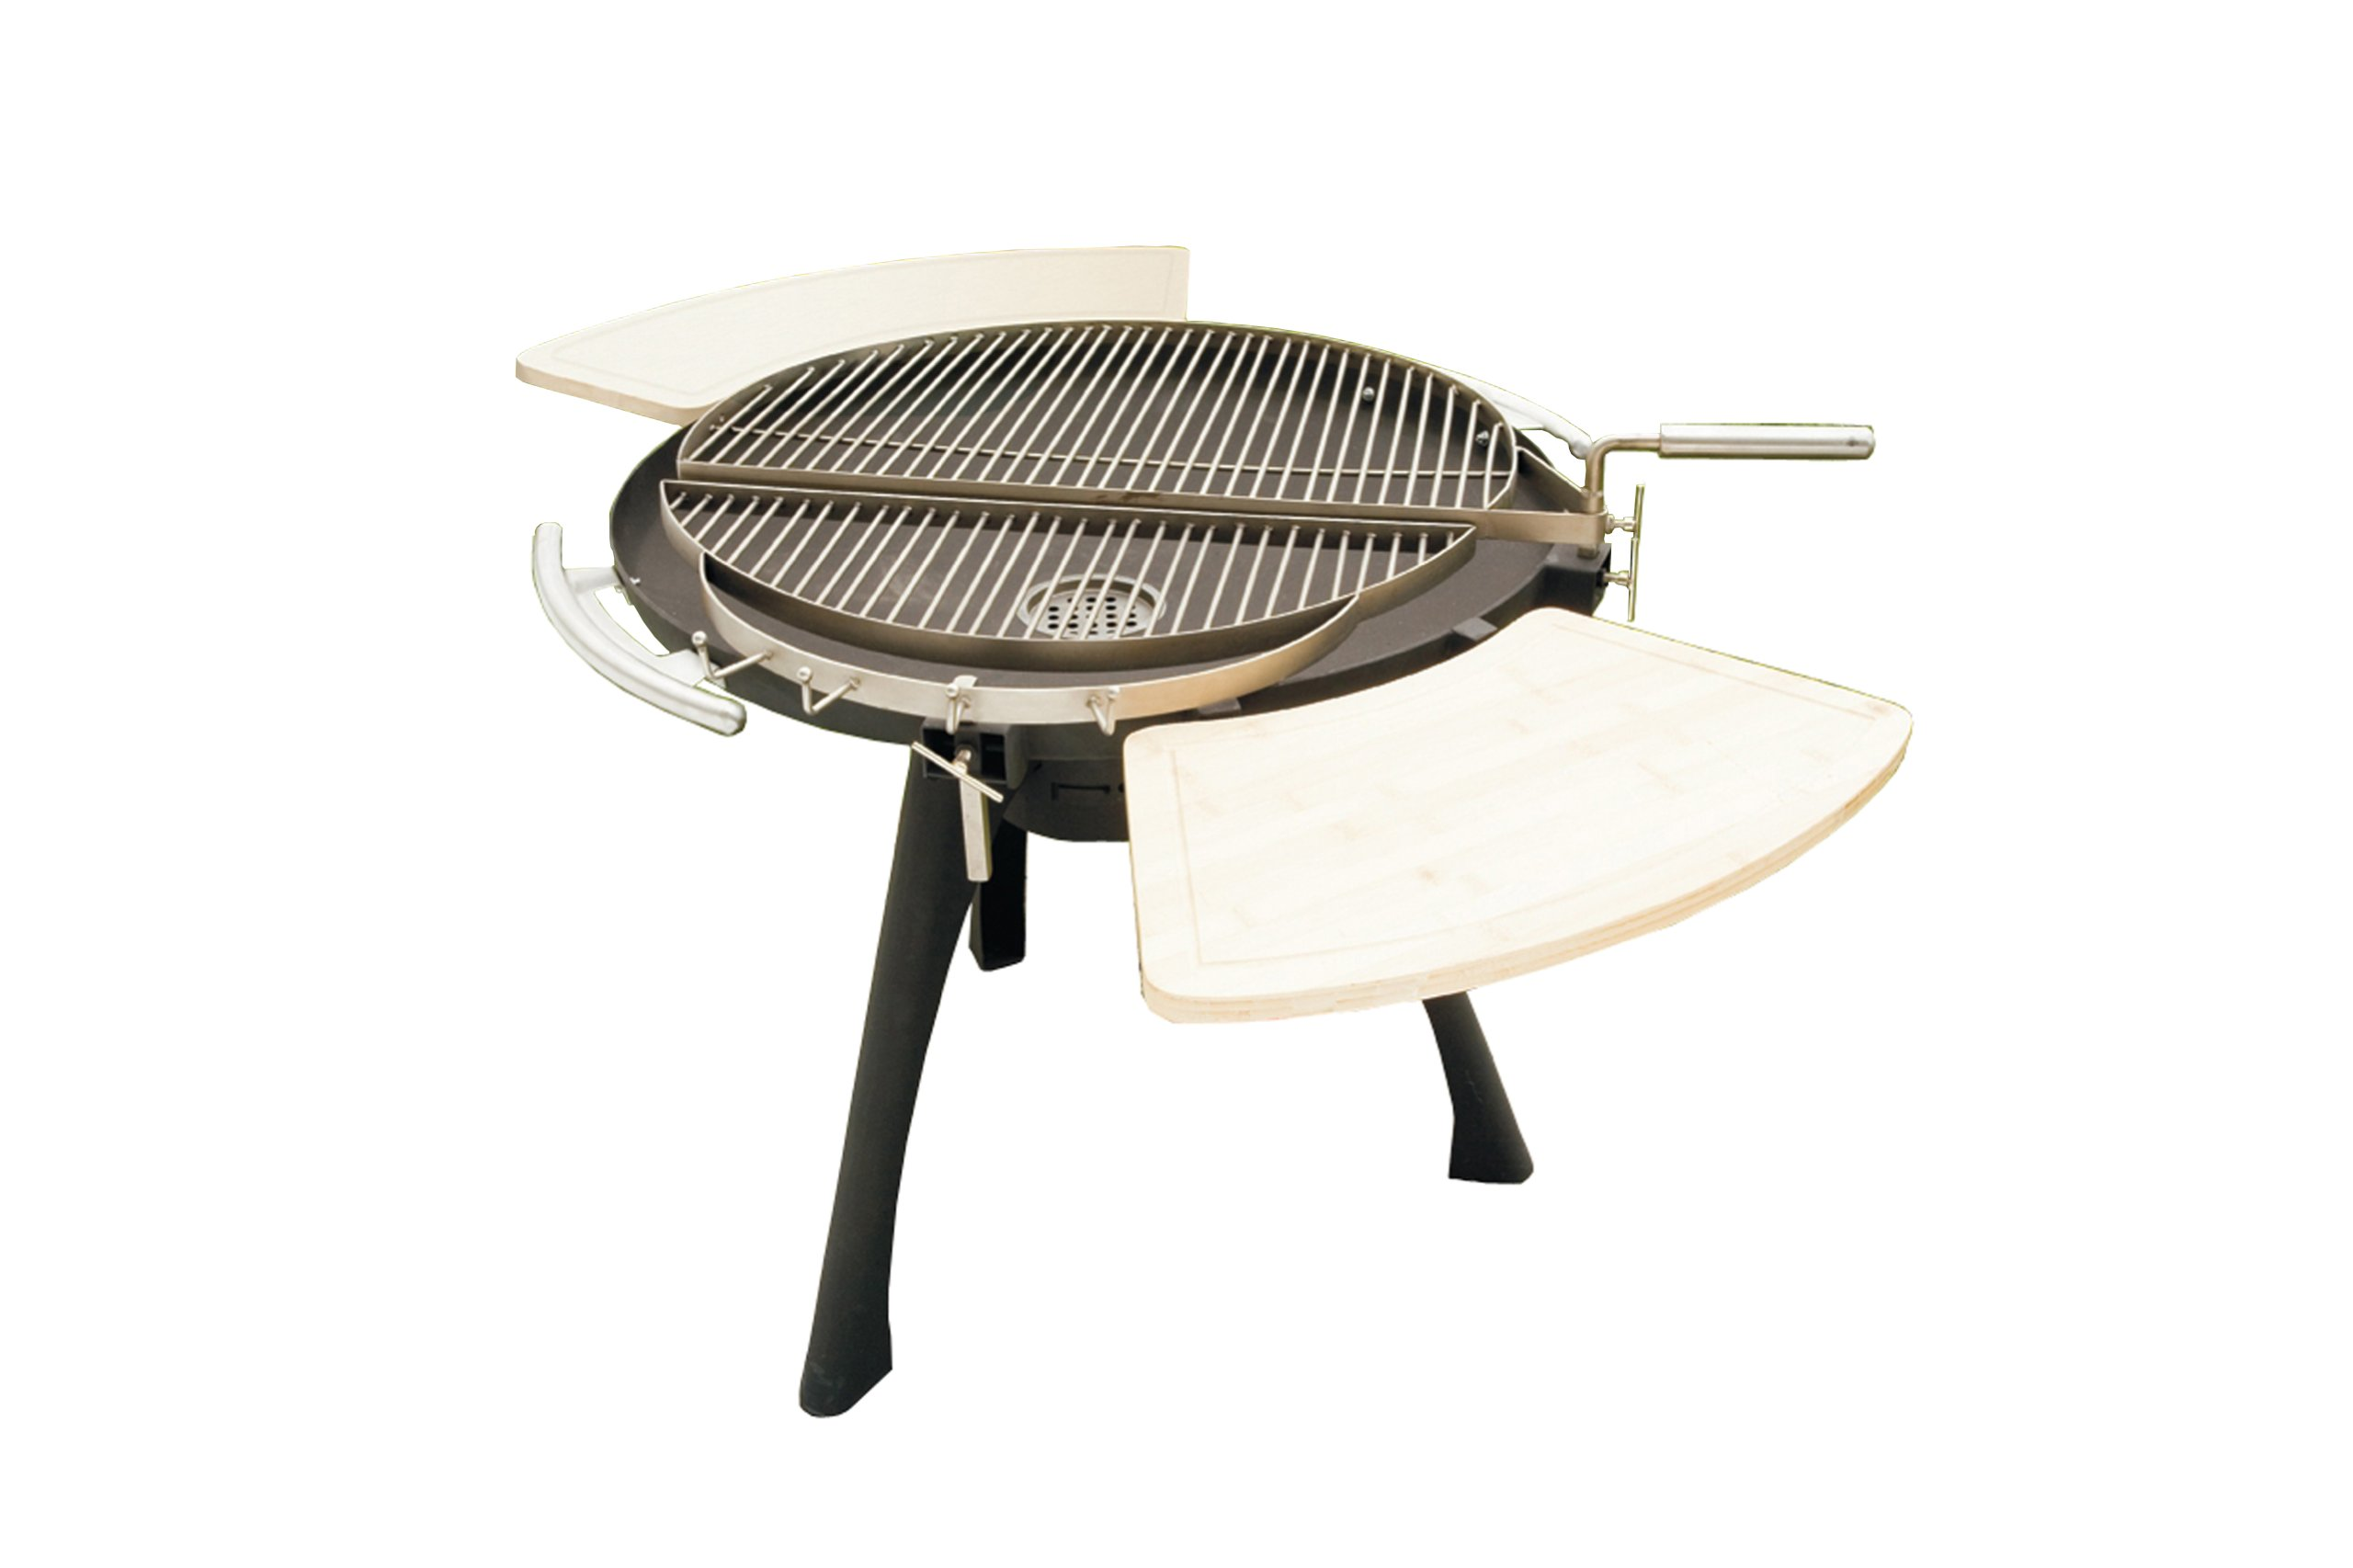 Fire Sense Space 800 Charcoal Grill